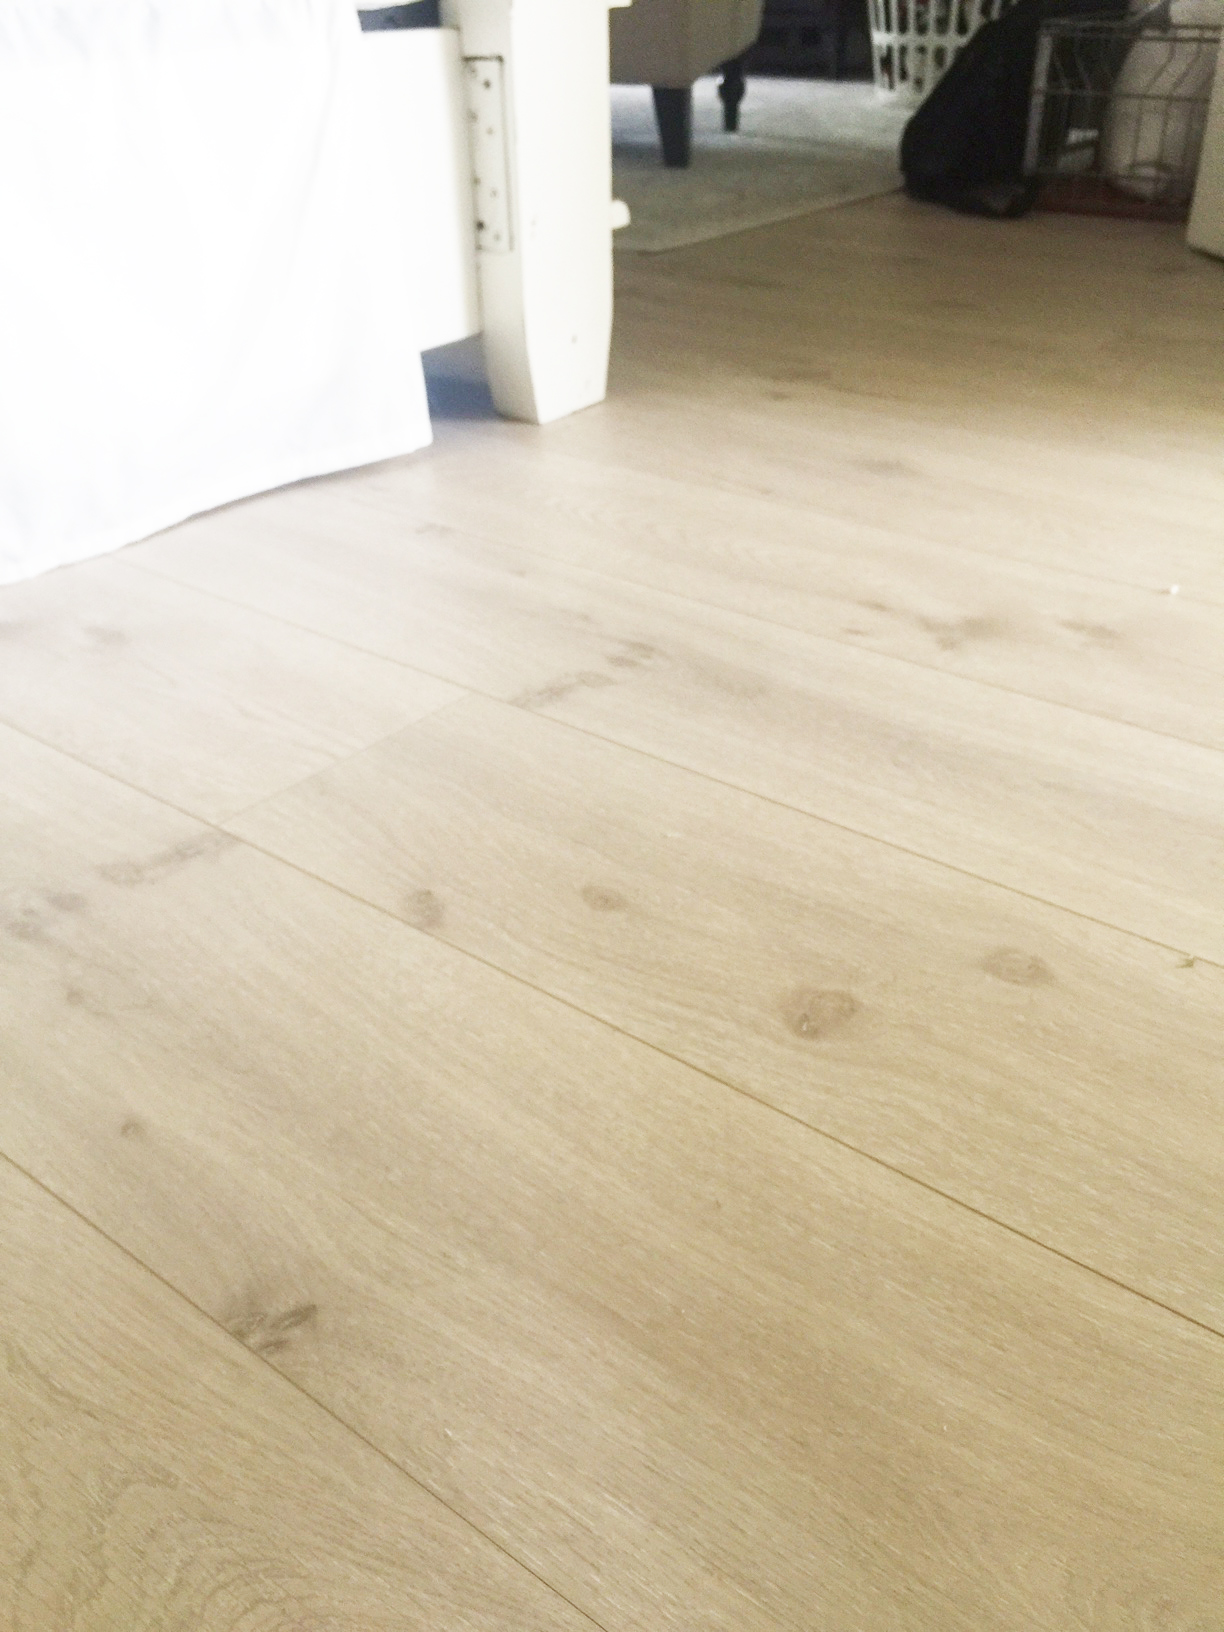 Install Pergo Laminate Flooring For A Farmhouse Look